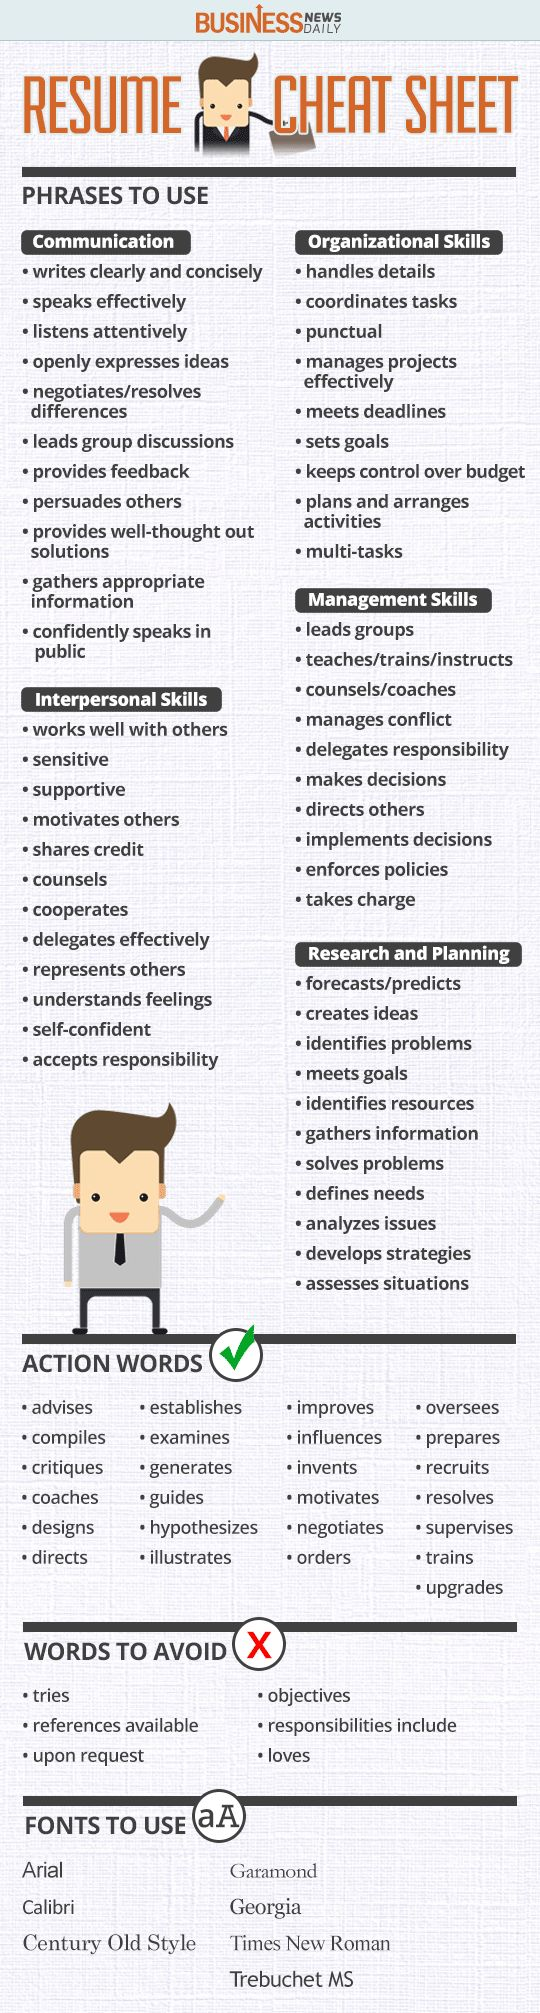 Opposenewapstandardsus  Personable  Ideas About Resume On Pinterest  Cv Format Resume Cv And  With Magnificent Resume Cheat Sheet Infographic Andrews Almost Done With A Complete Unit On Employment Which With Alluring Summer Camp Counselor Resume Also Sample Finance Resume In Addition Sales Associate Job Description For Resume And Server Resume Template As Well As Qa Lead Resume Additionally Software Developer Resume Sample From Pinterestcom With Opposenewapstandardsus  Magnificent  Ideas About Resume On Pinterest  Cv Format Resume Cv And  With Alluring Resume Cheat Sheet Infographic Andrews Almost Done With A Complete Unit On Employment Which And Personable Summer Camp Counselor Resume Also Sample Finance Resume In Addition Sales Associate Job Description For Resume From Pinterestcom